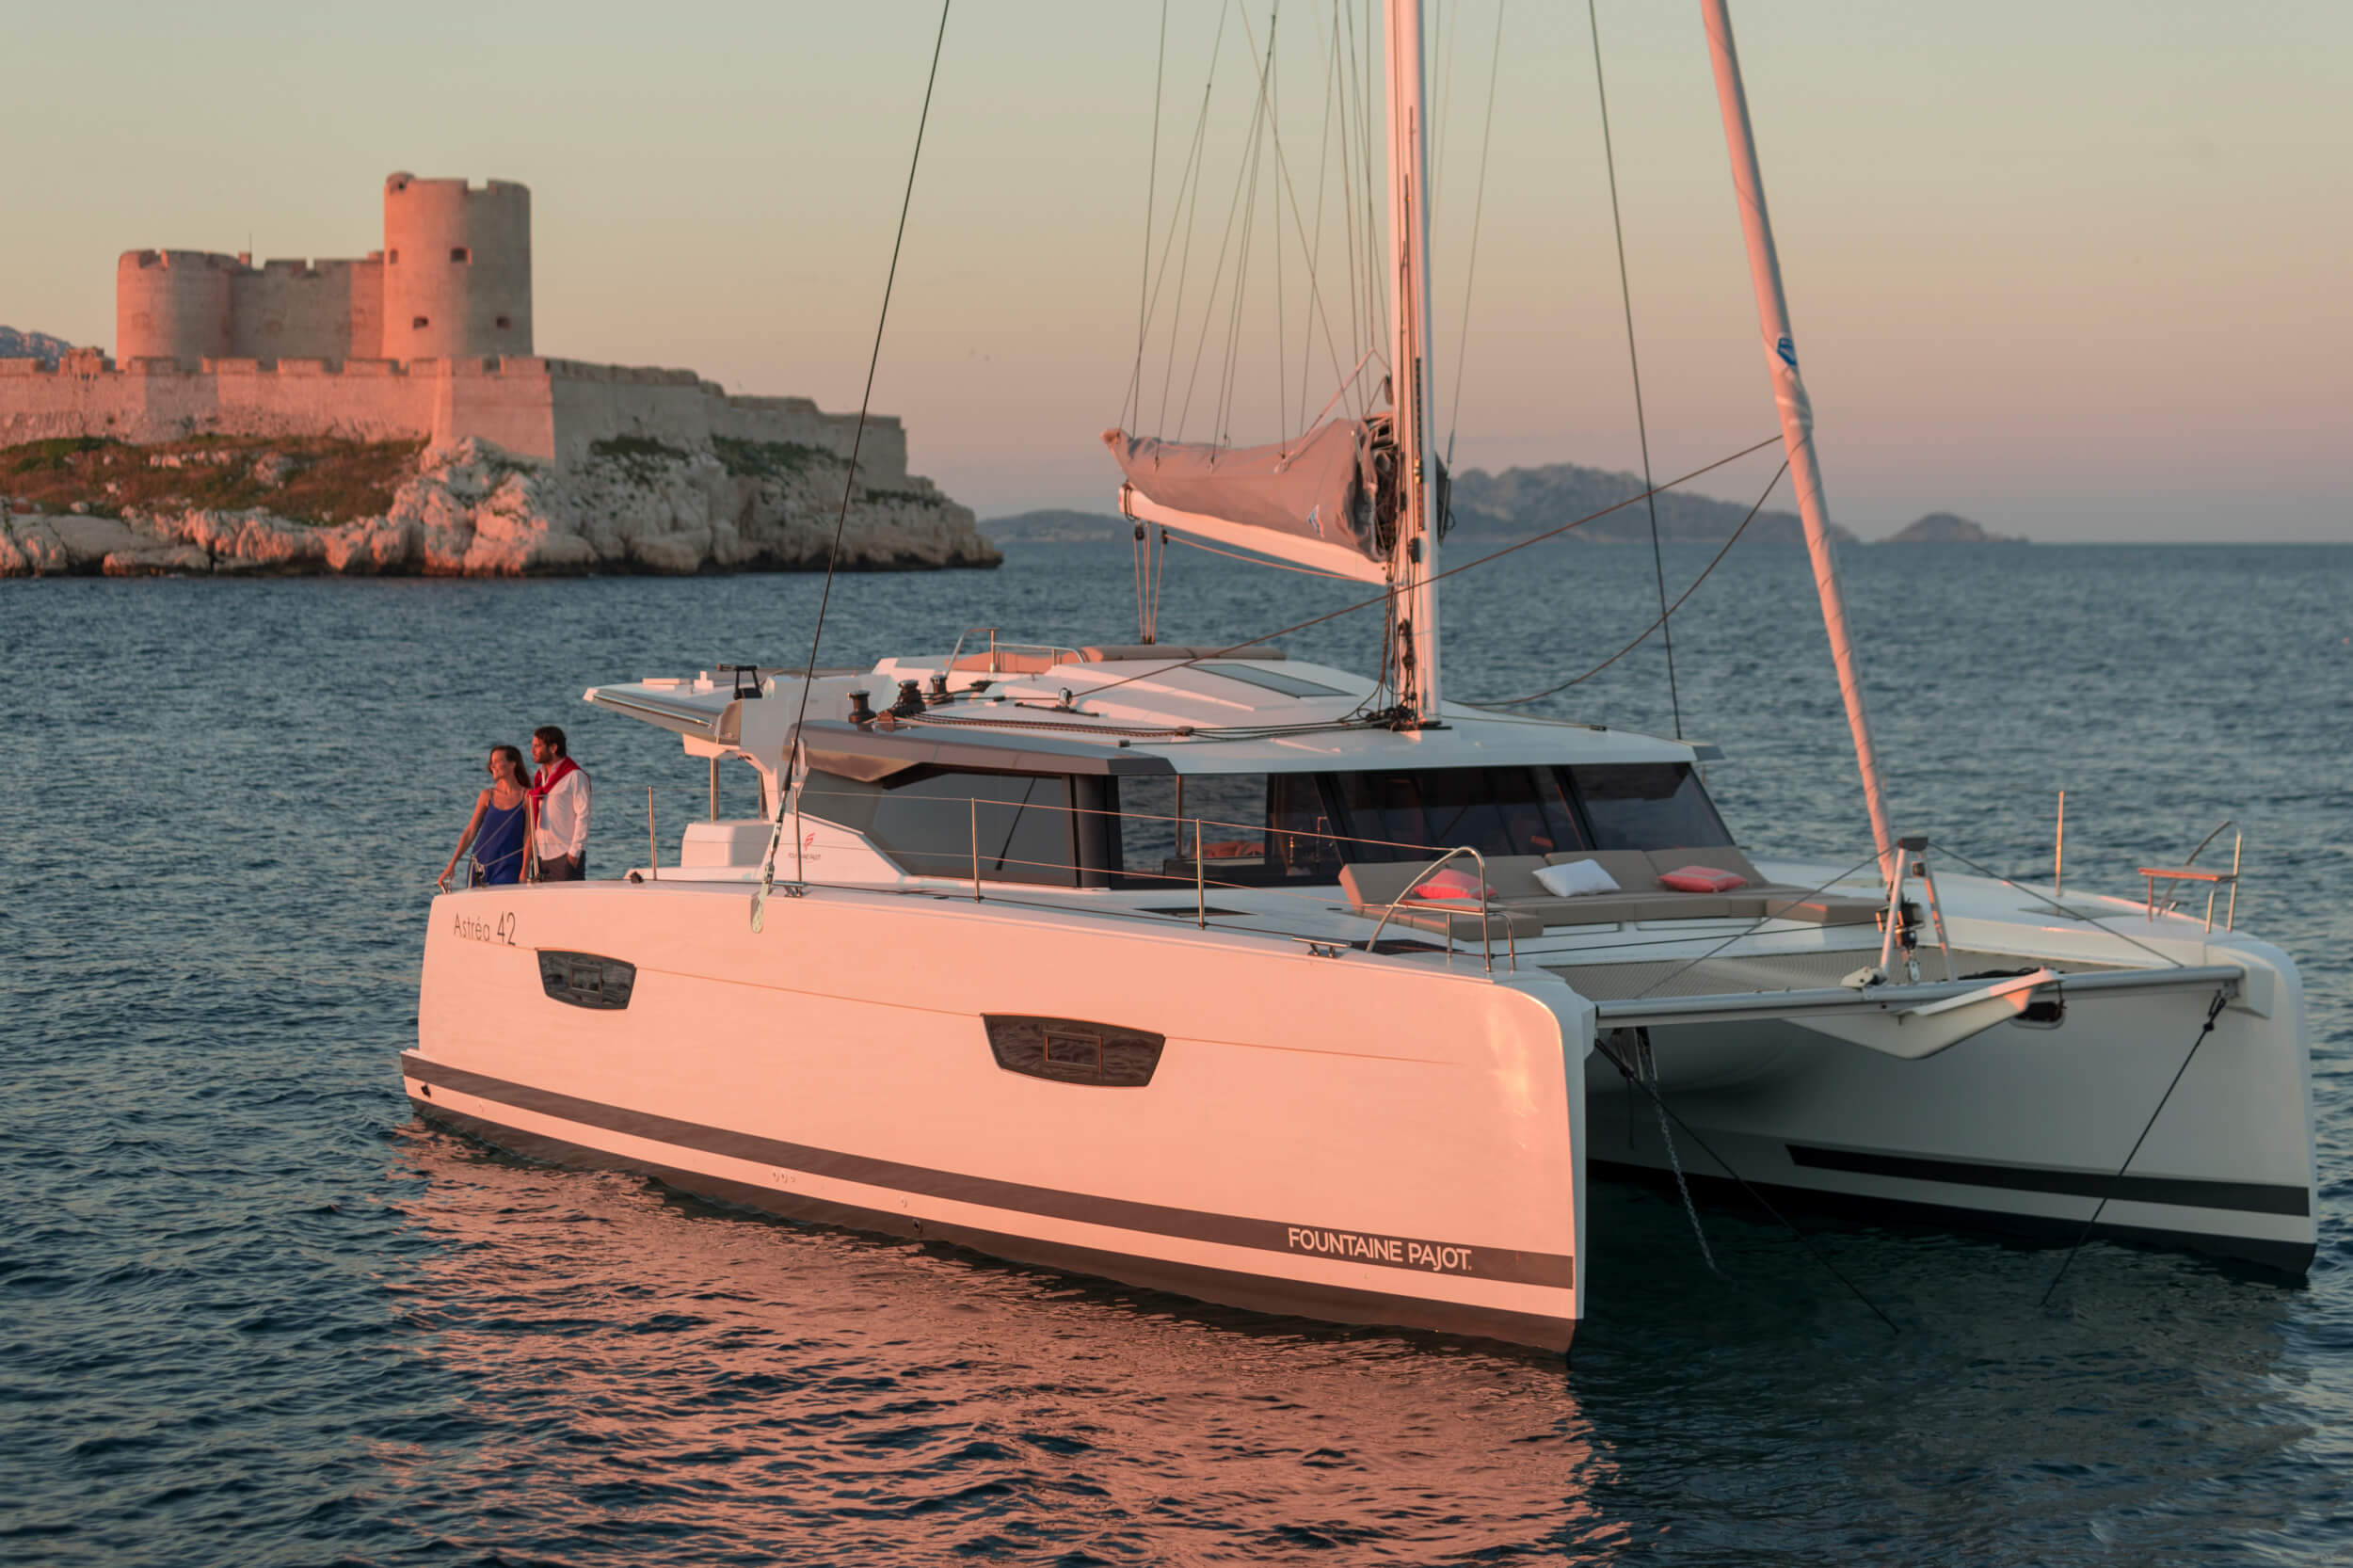 New Sail Catamaran for Sale 2019 Astrea 42 Boat Highlights